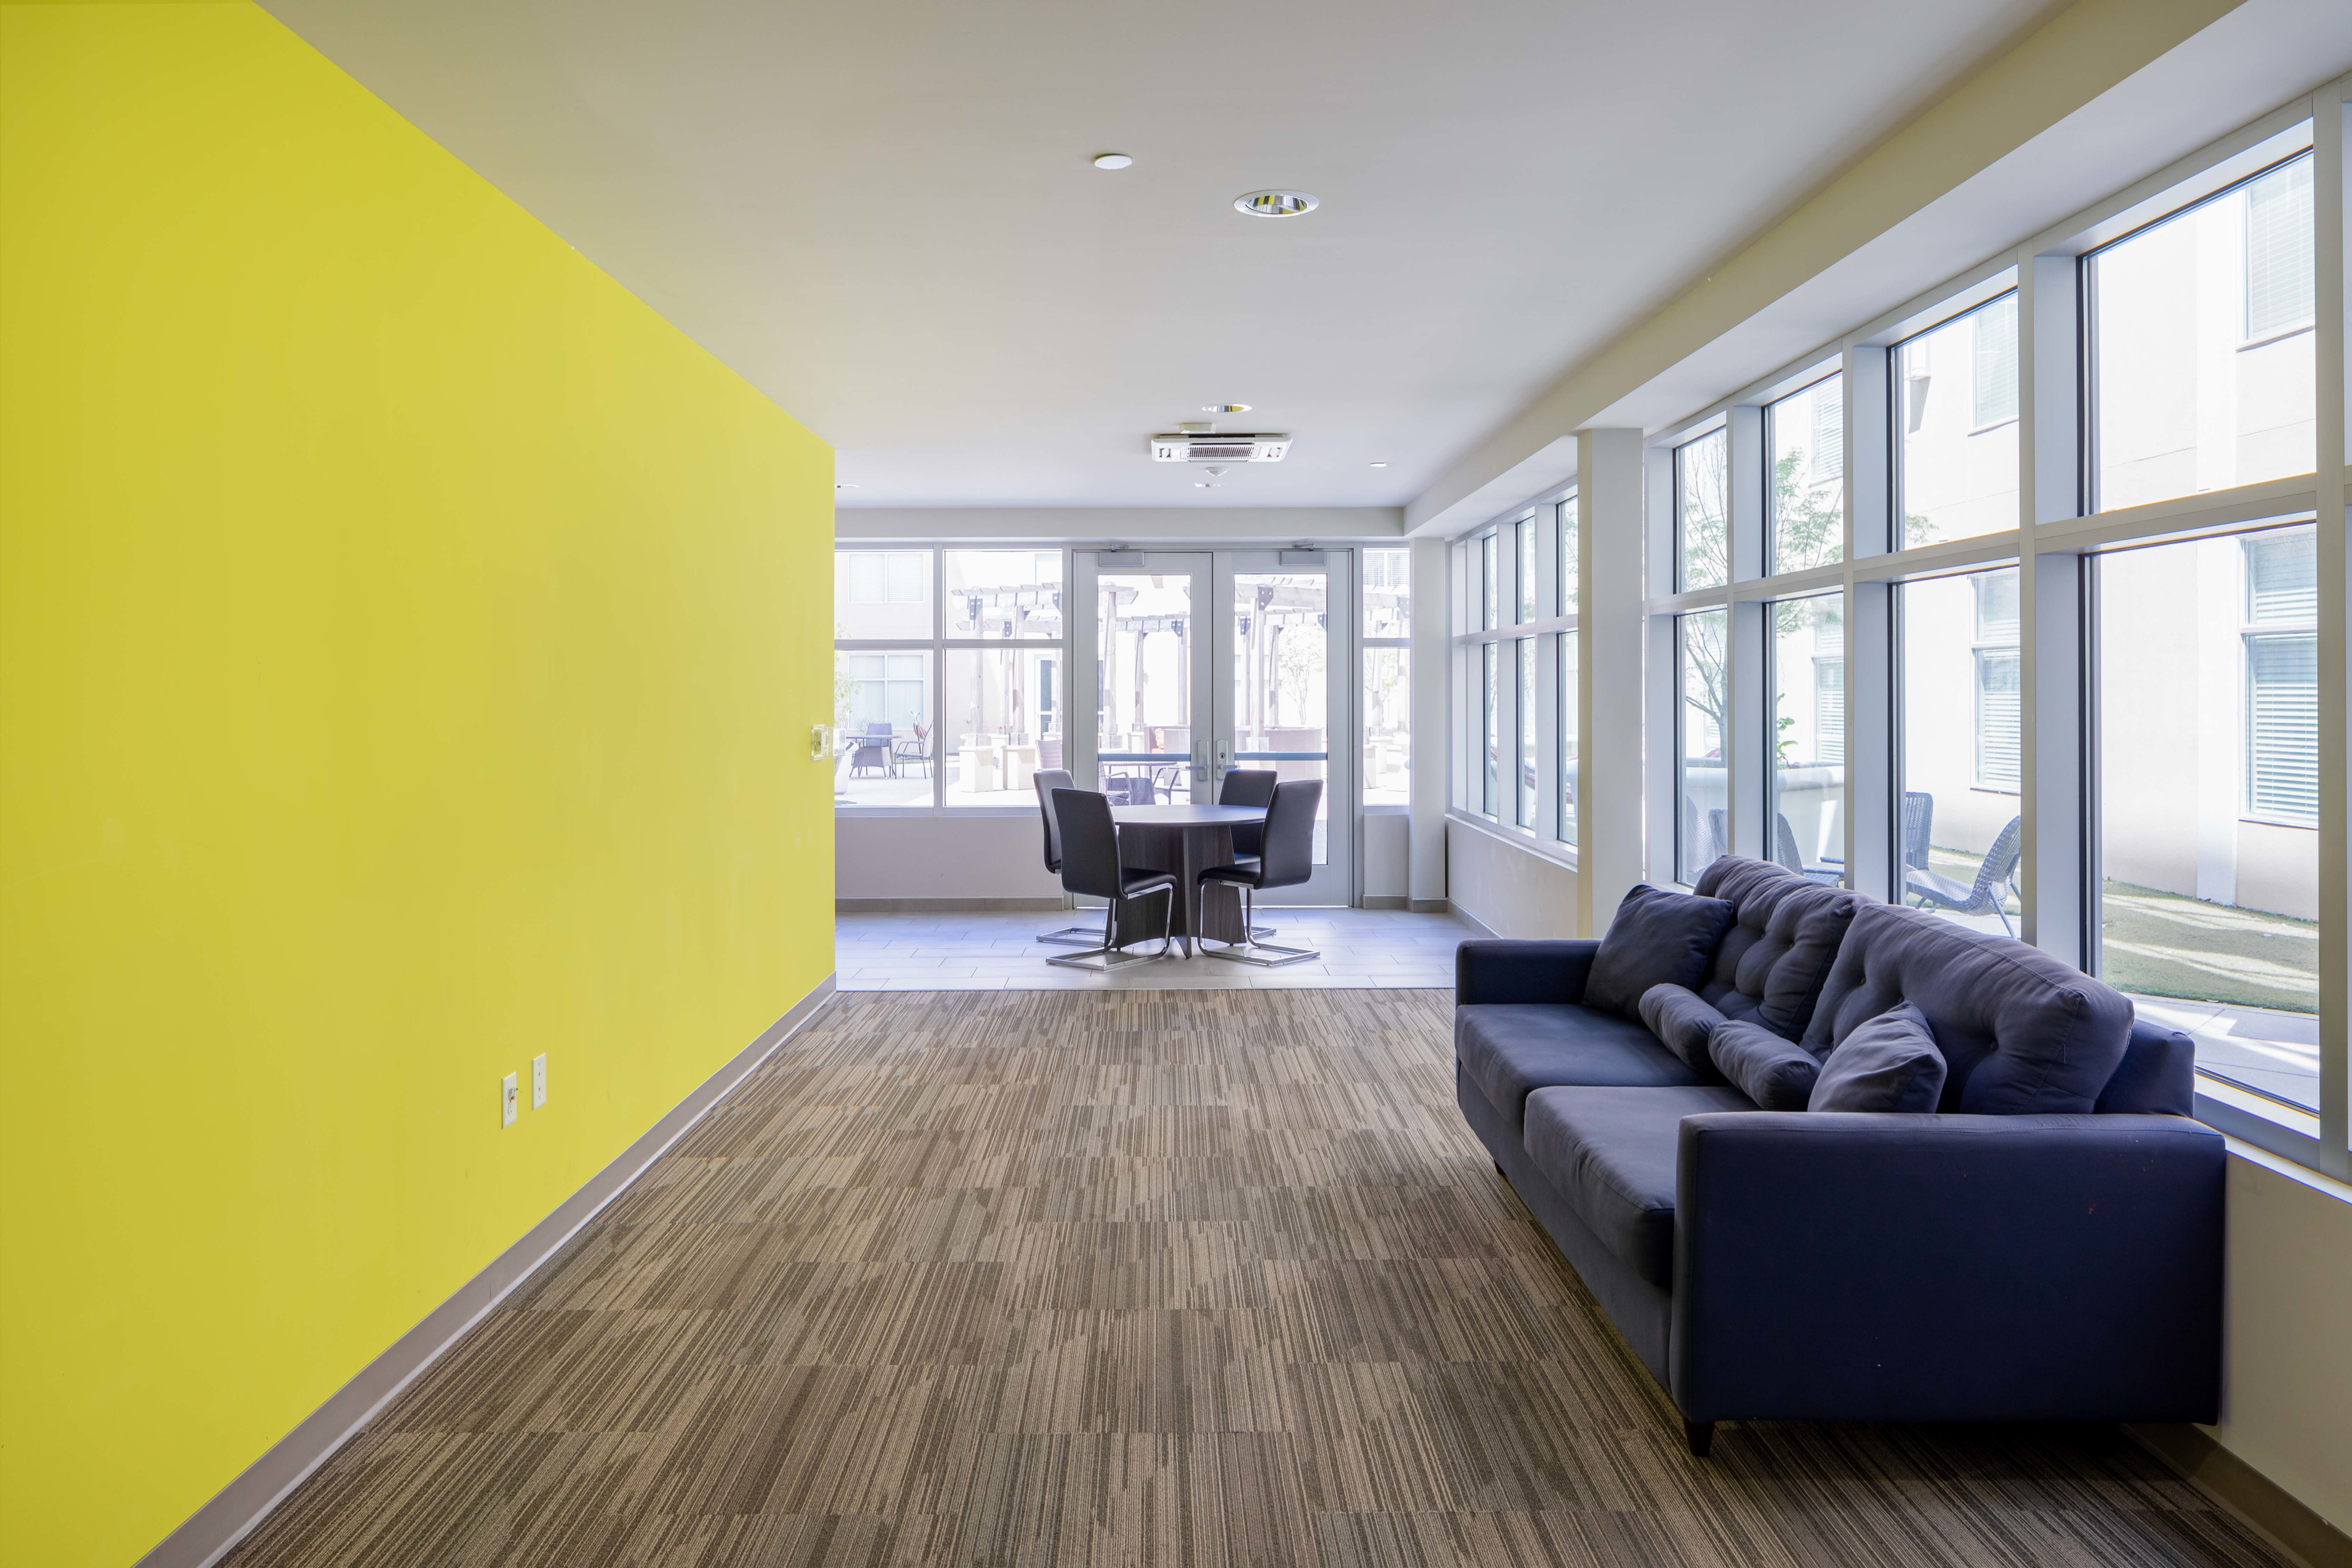 Image of Private Study Rooms On Each Floor for 200 Edgewood